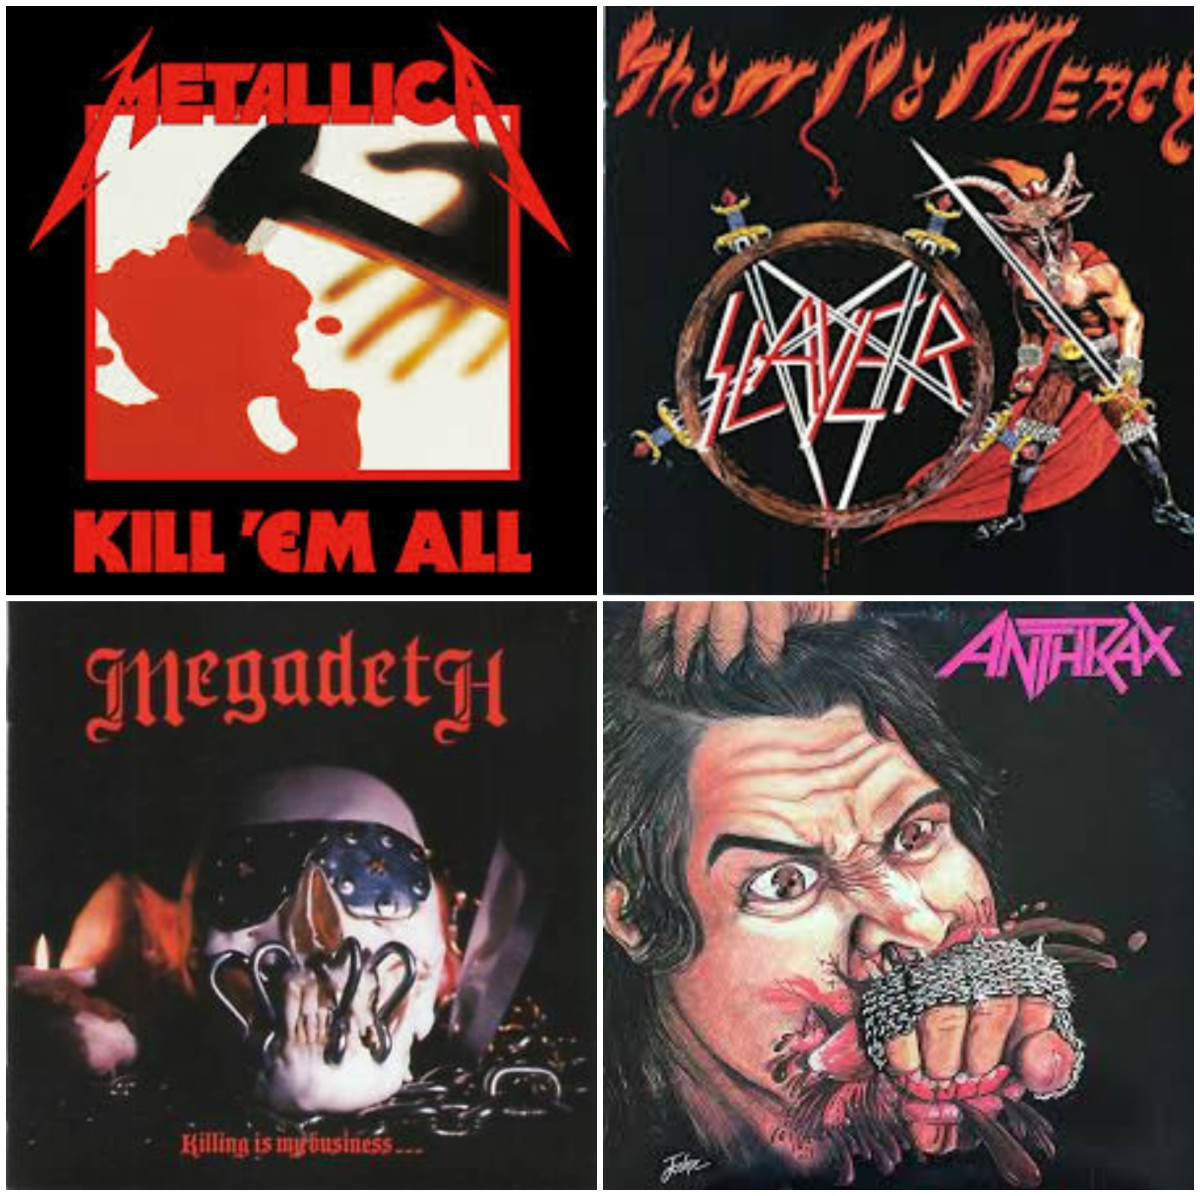 If you don't own these four albums, can you really call yourself a metal head?